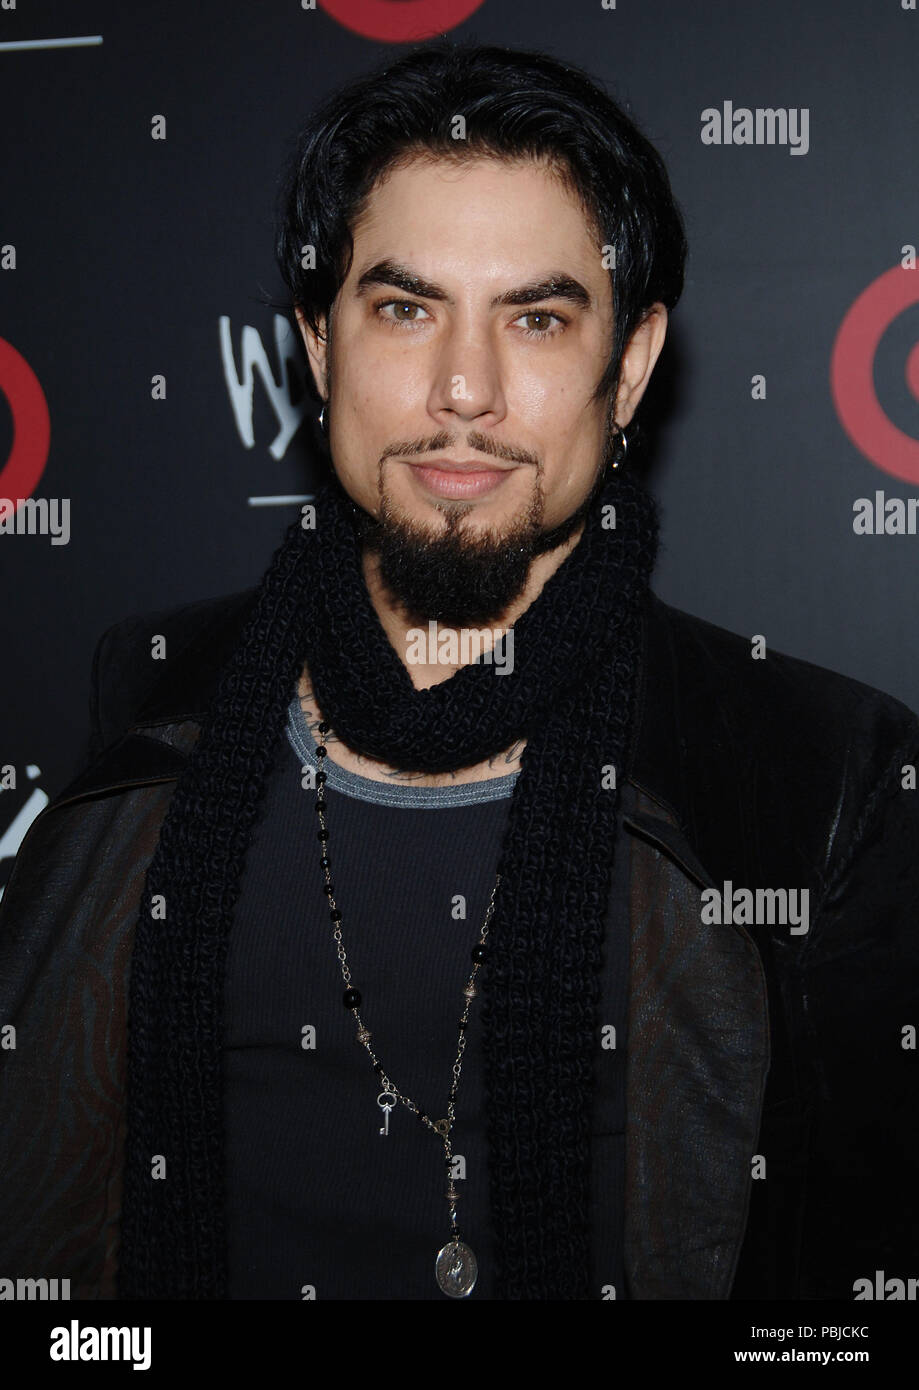 Dave Navaro Arriving At The TARGET Host Fashion Week Bash Area In Los Angeles